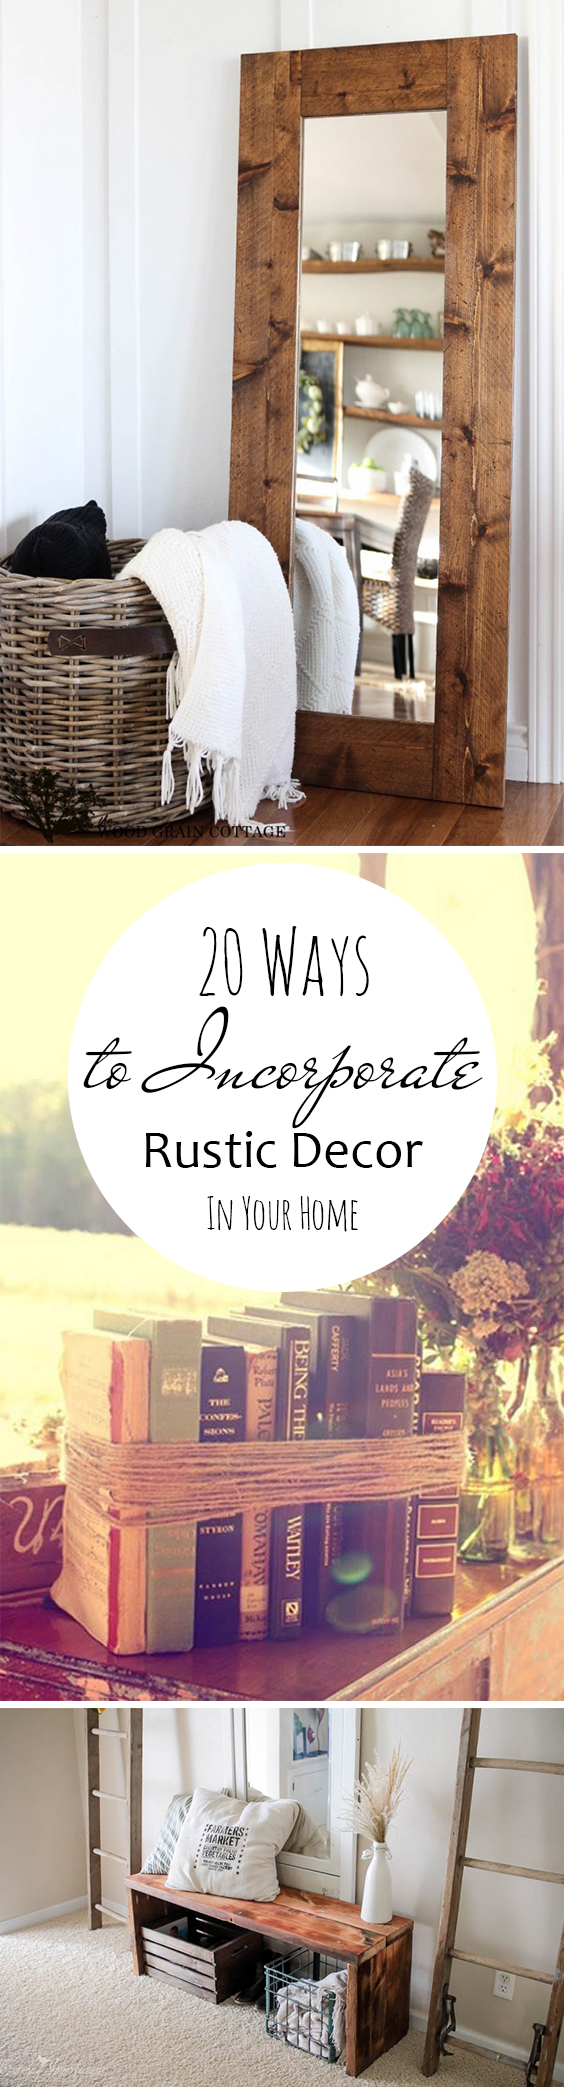 Rustic Home Decor, Rustic Interior Design, Farmhouse Living, Farmhouse Design, Popular Pin, DIY Home Decor, DIY Farmhouse Projects.